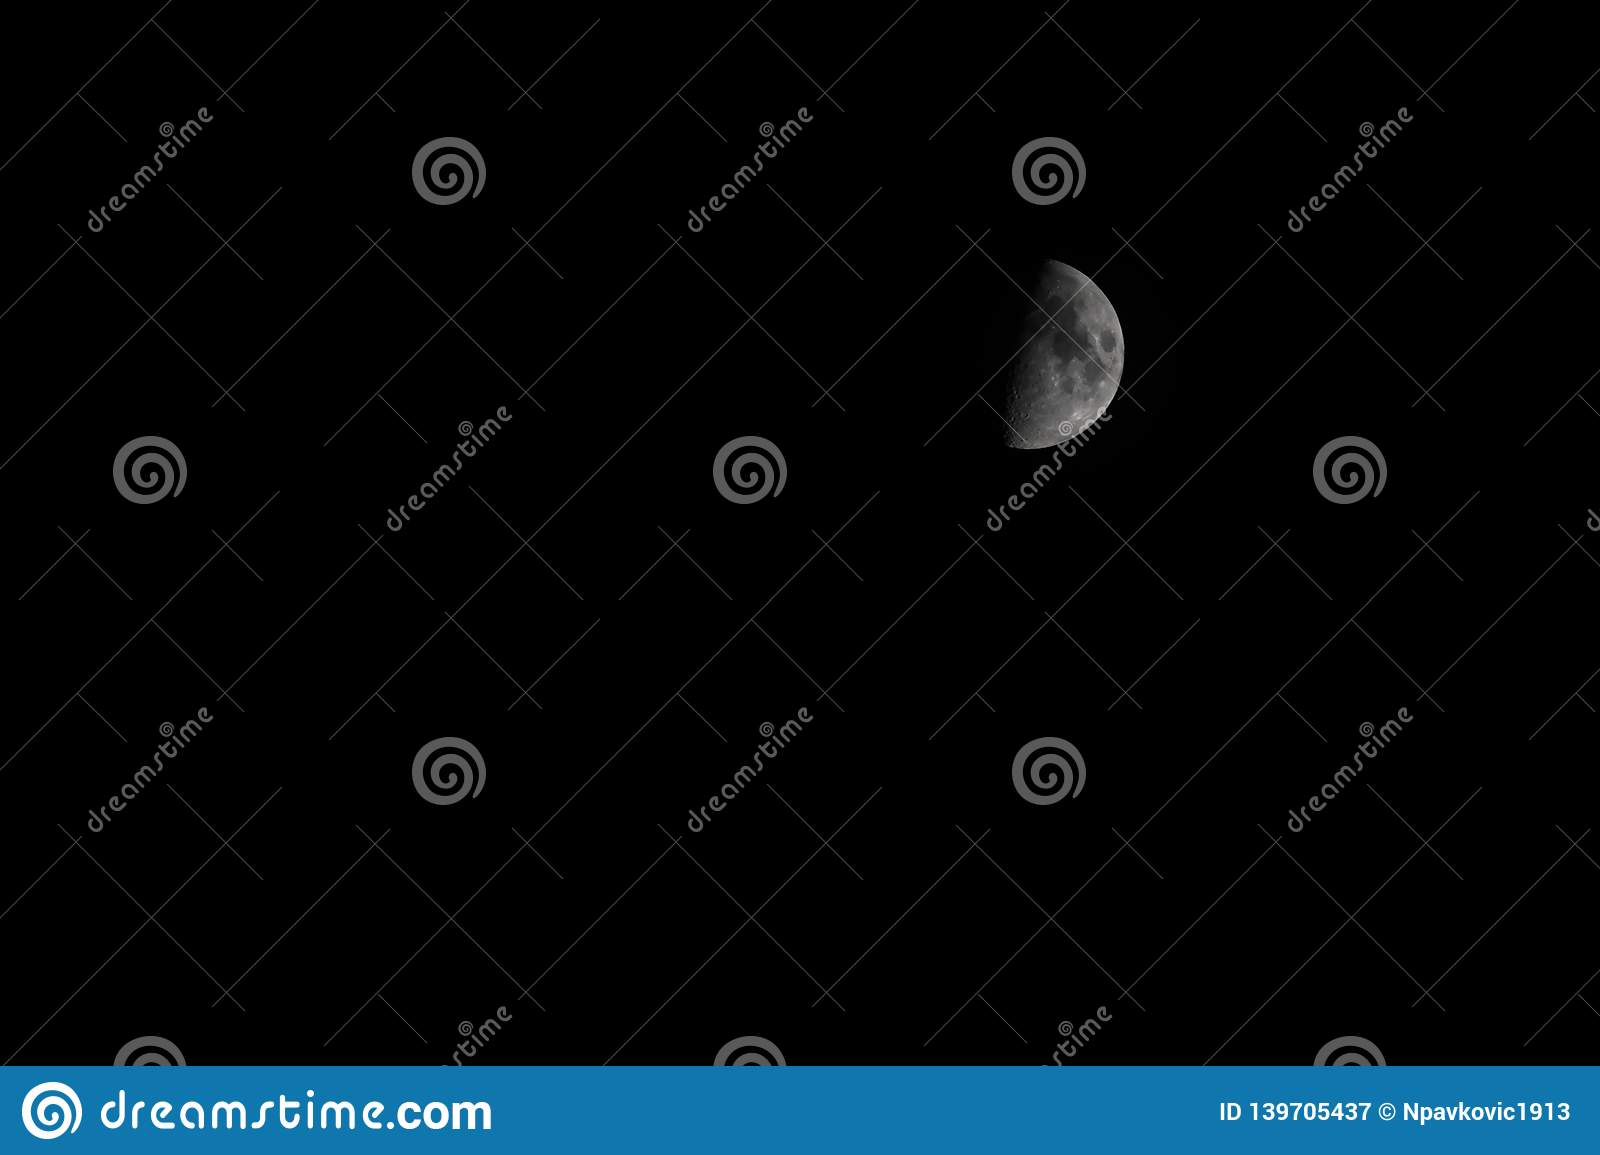 Picture of a half moon